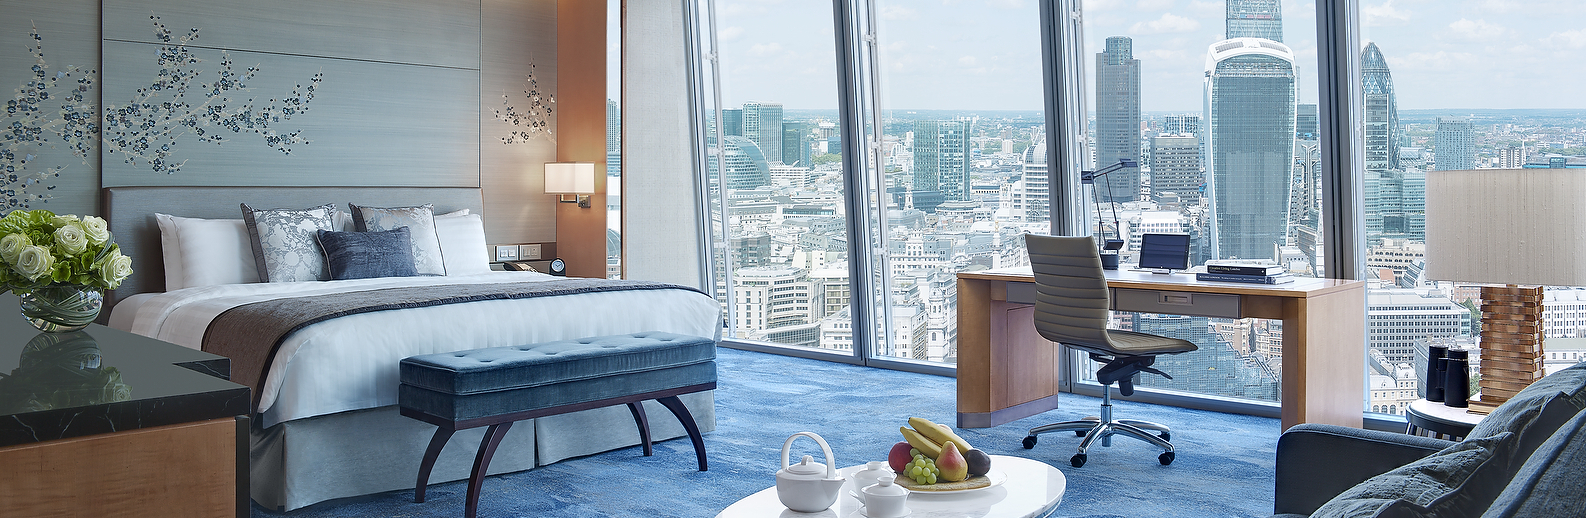 Premier City View Room - Shangri-La Hotel, At The Shard, London-crop